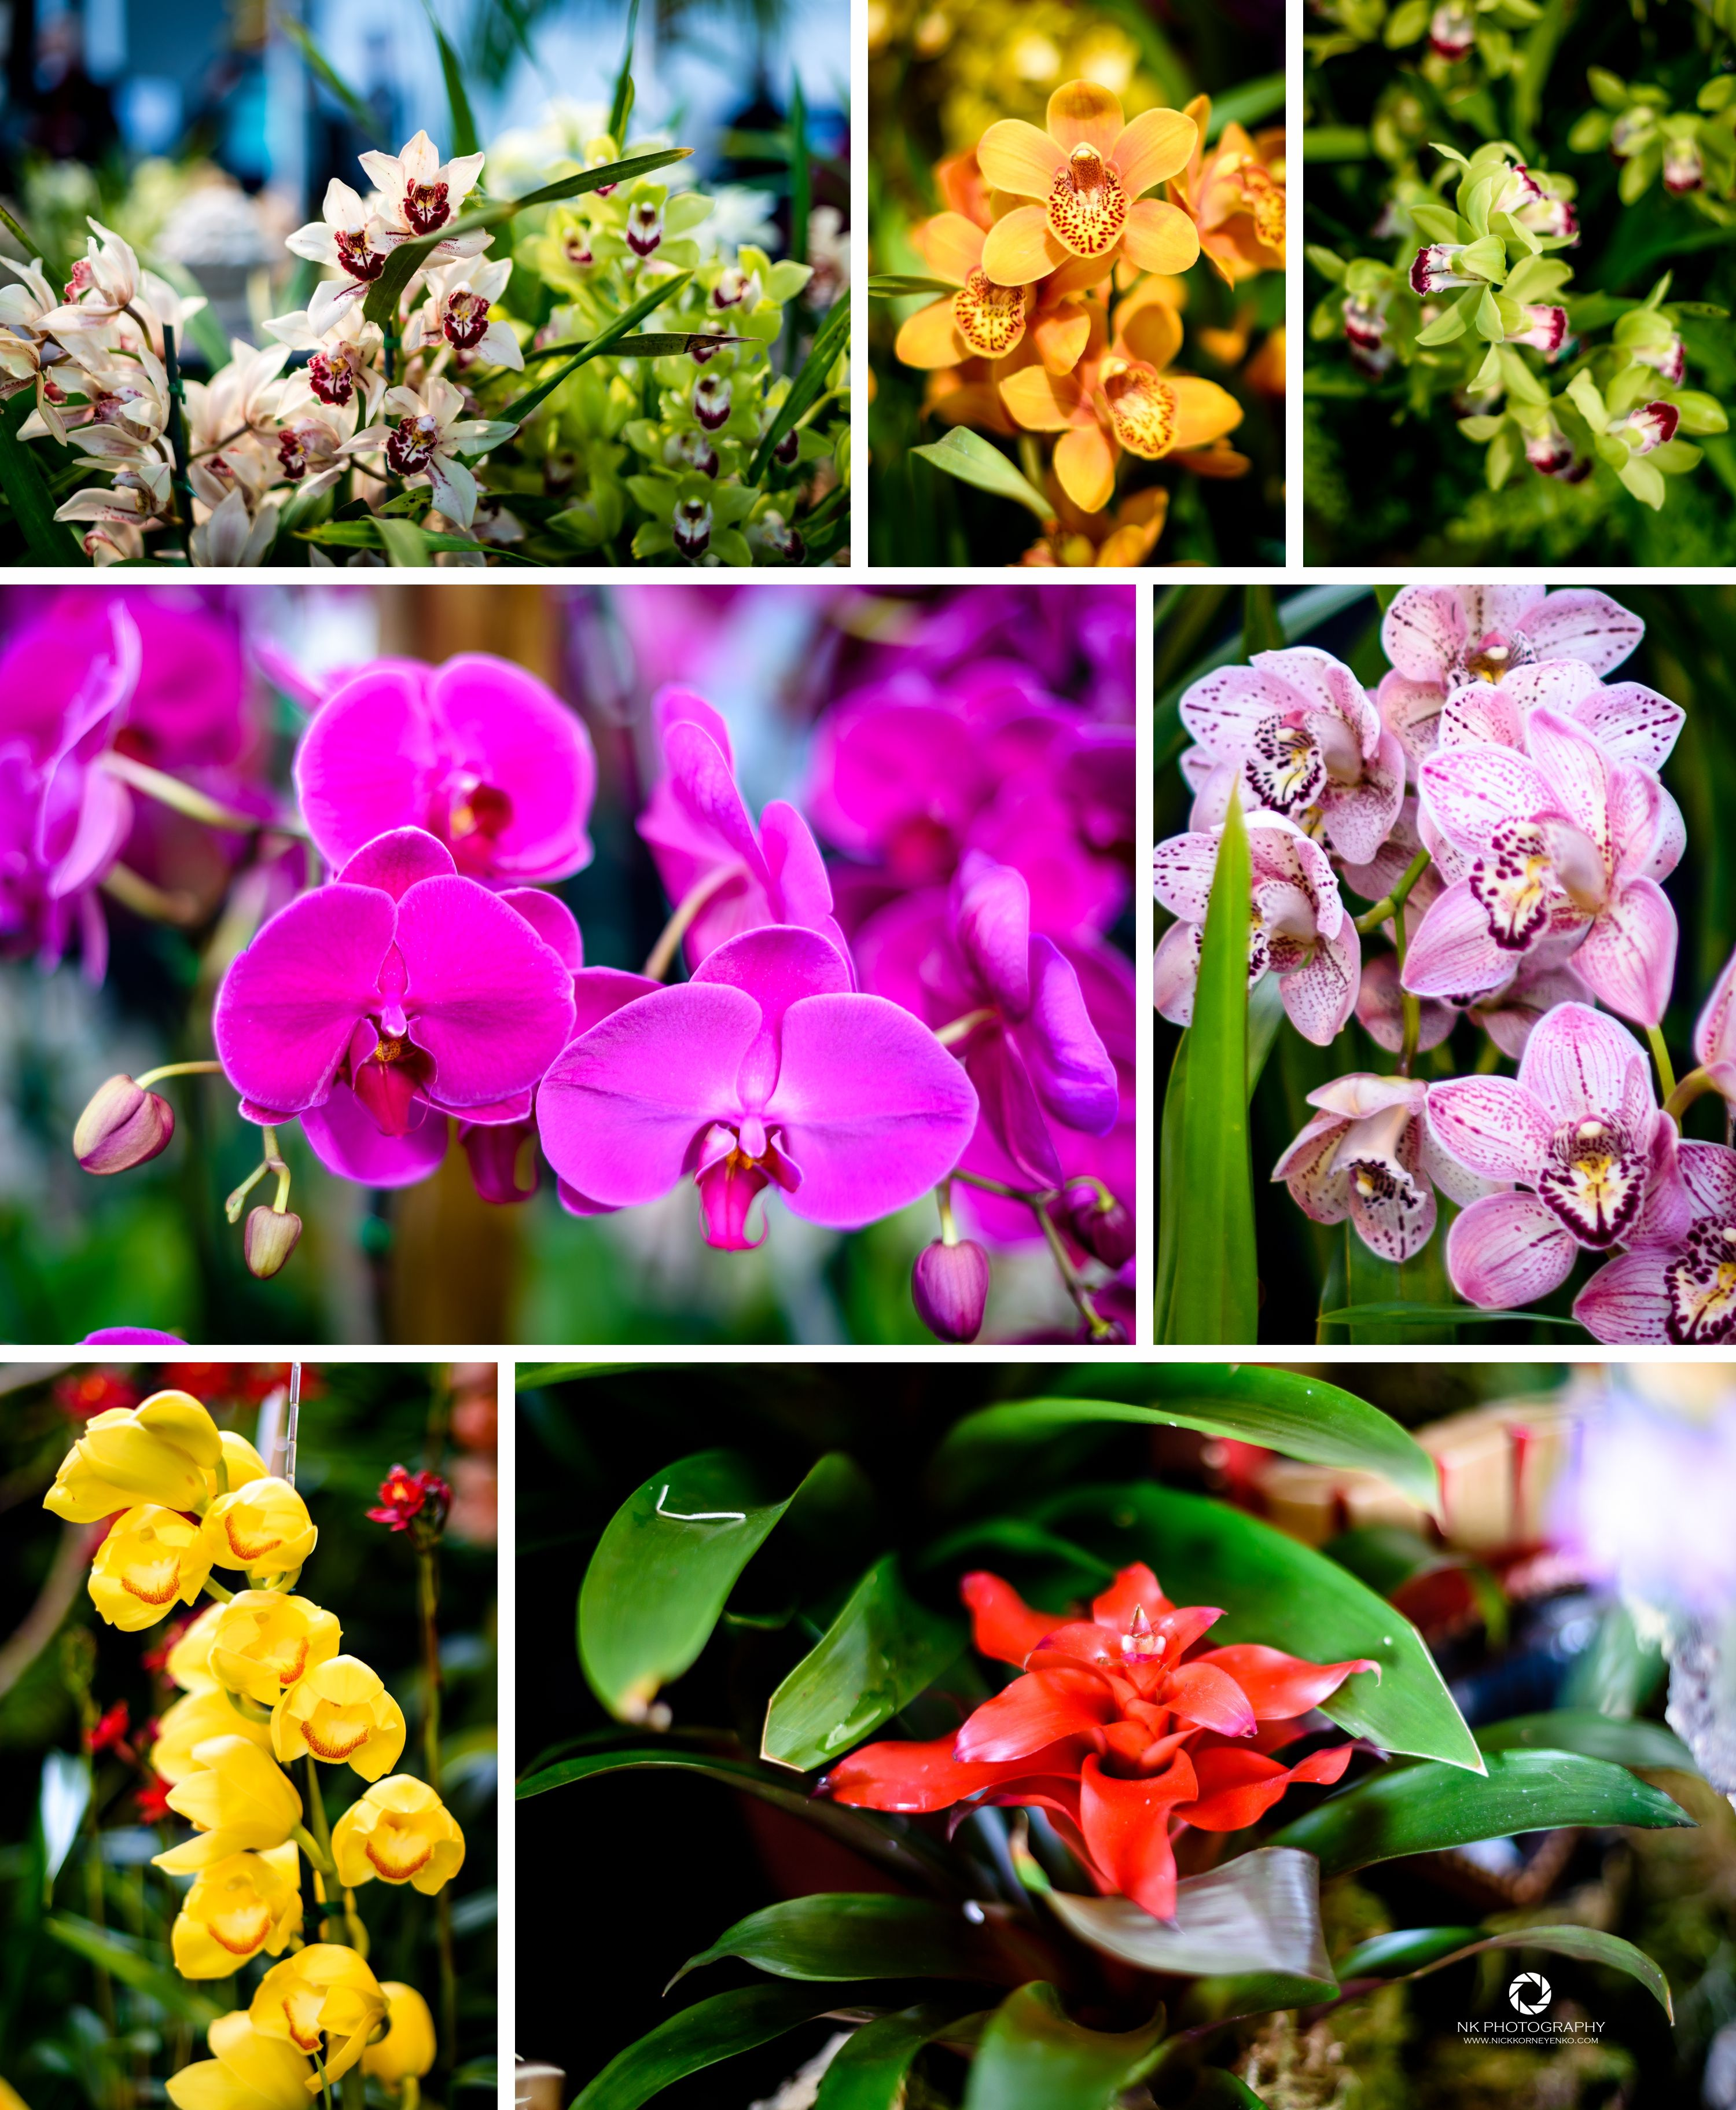 64th Annual Pacific Orchid Exposition A Legacy Of Orchids Over